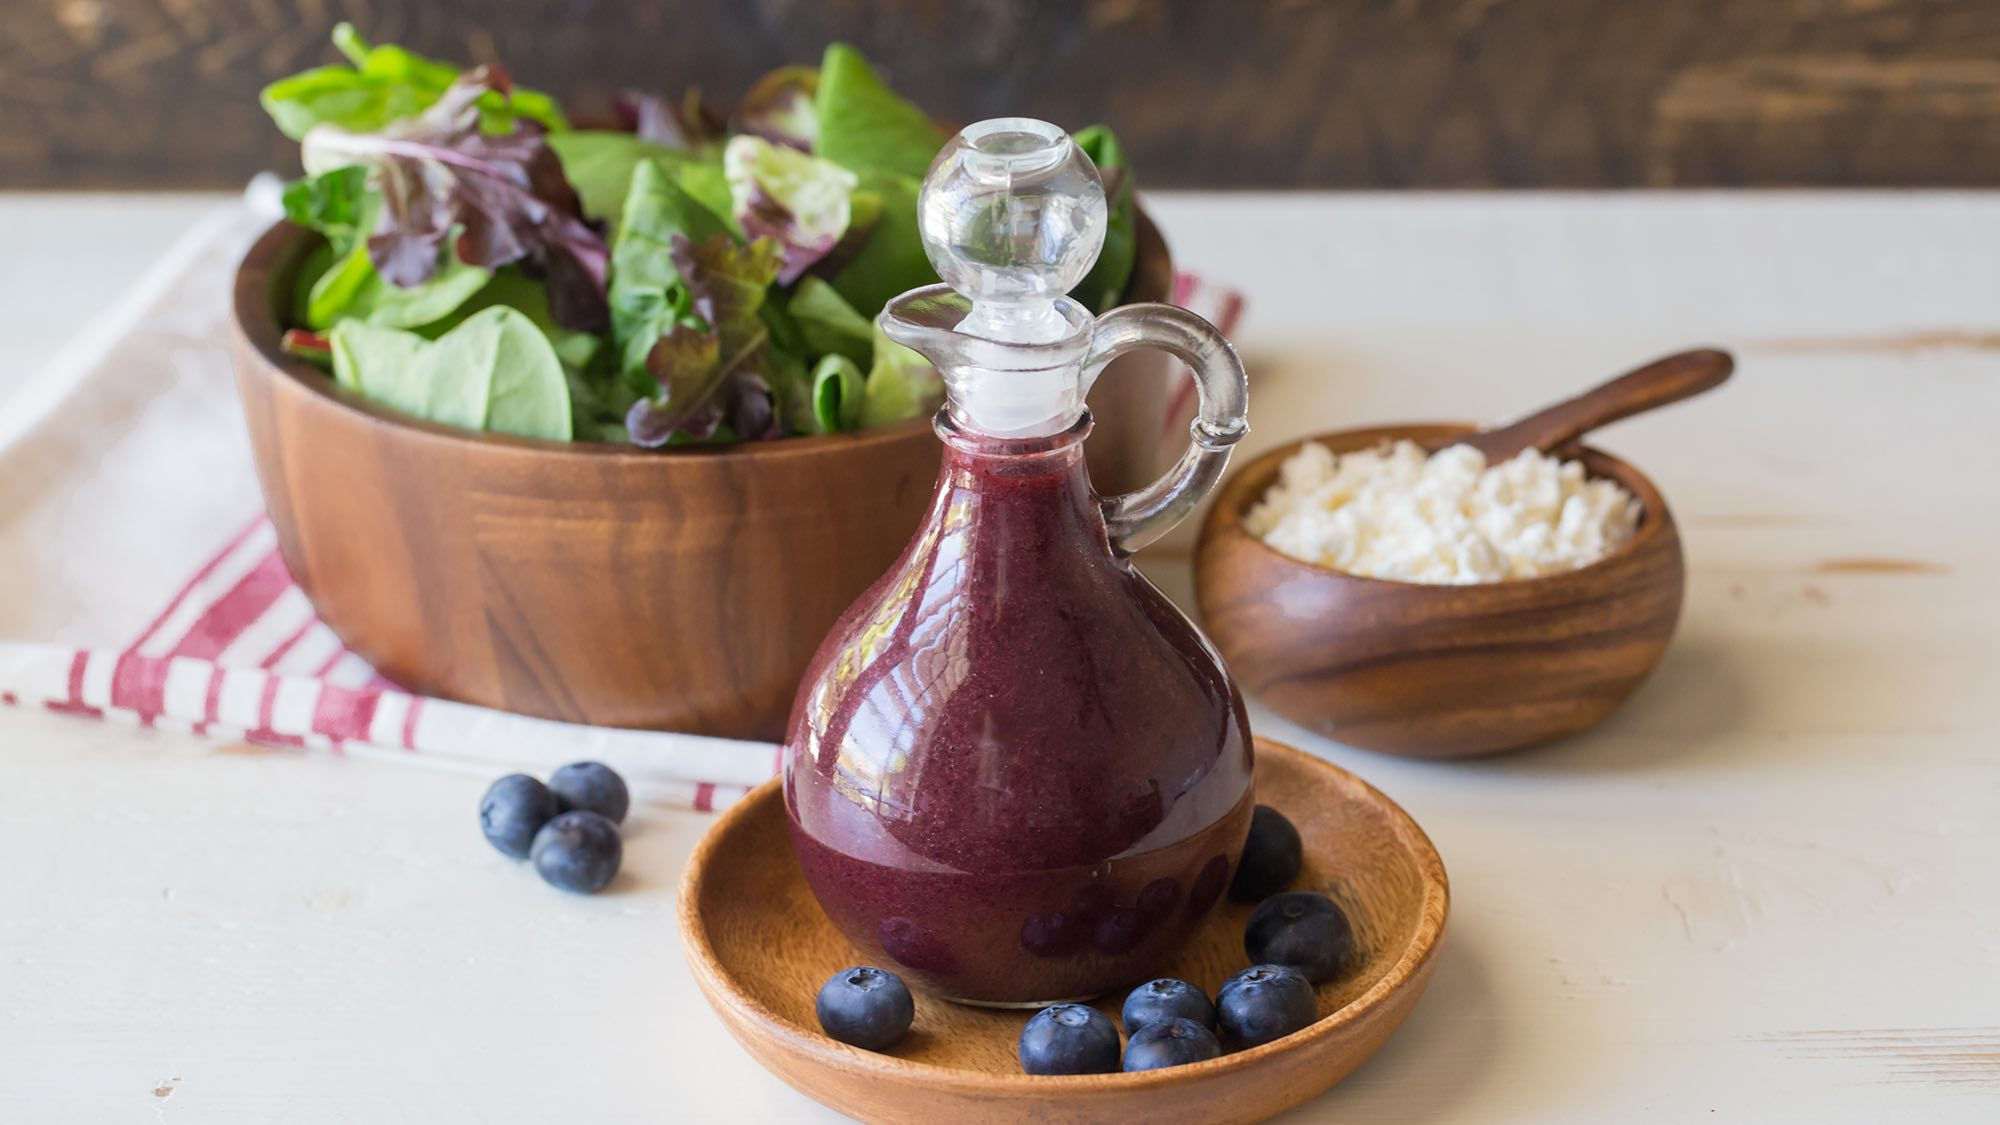 blueberry-balsamic-vinaigrette.jpg